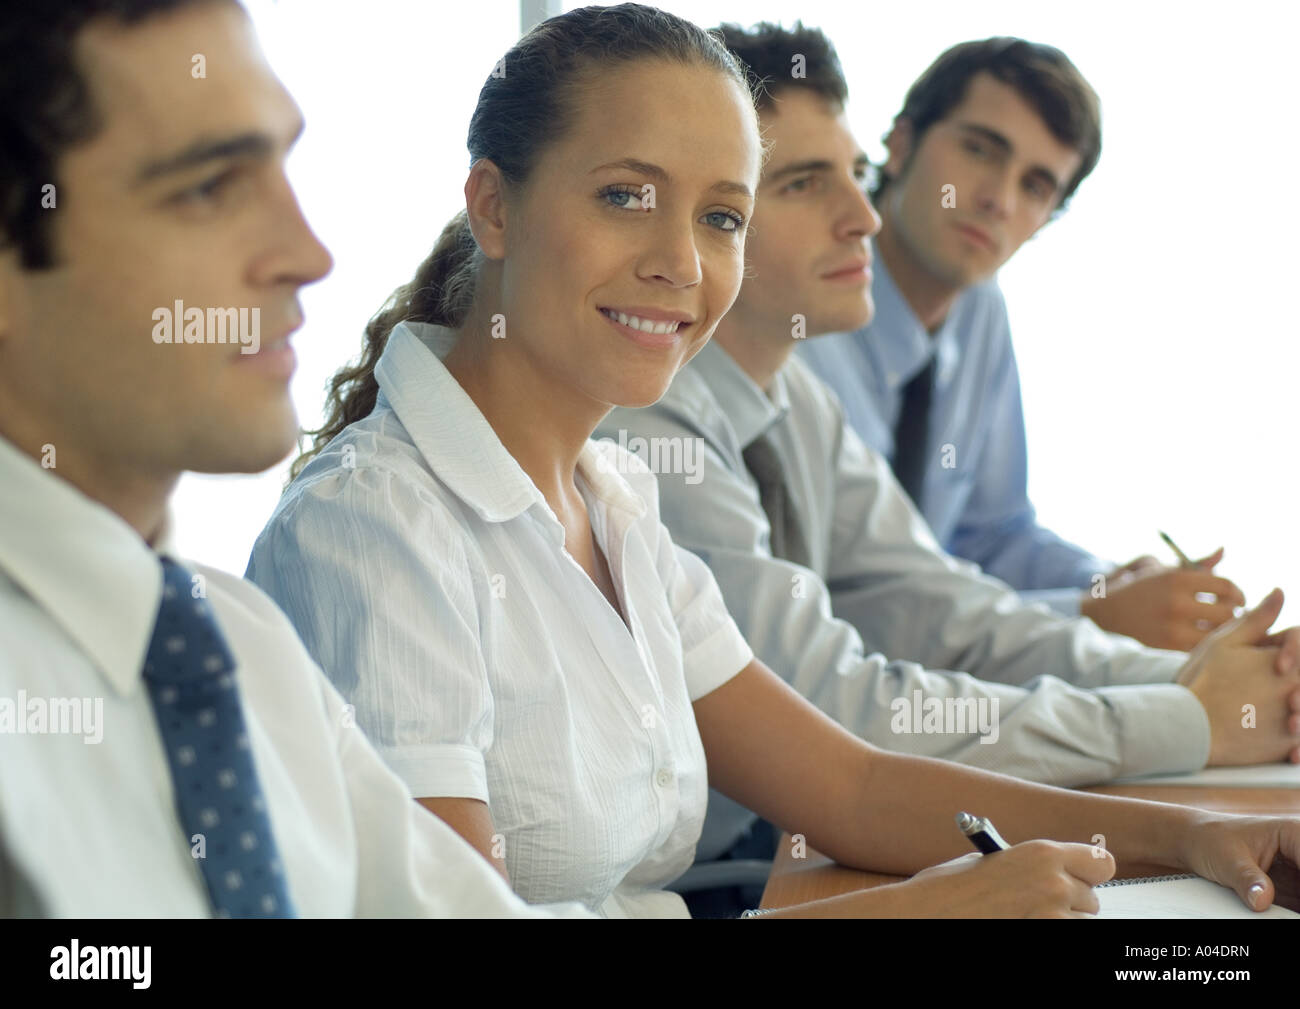 Business associates sitting at table, woman smiling at camera - Stock Image